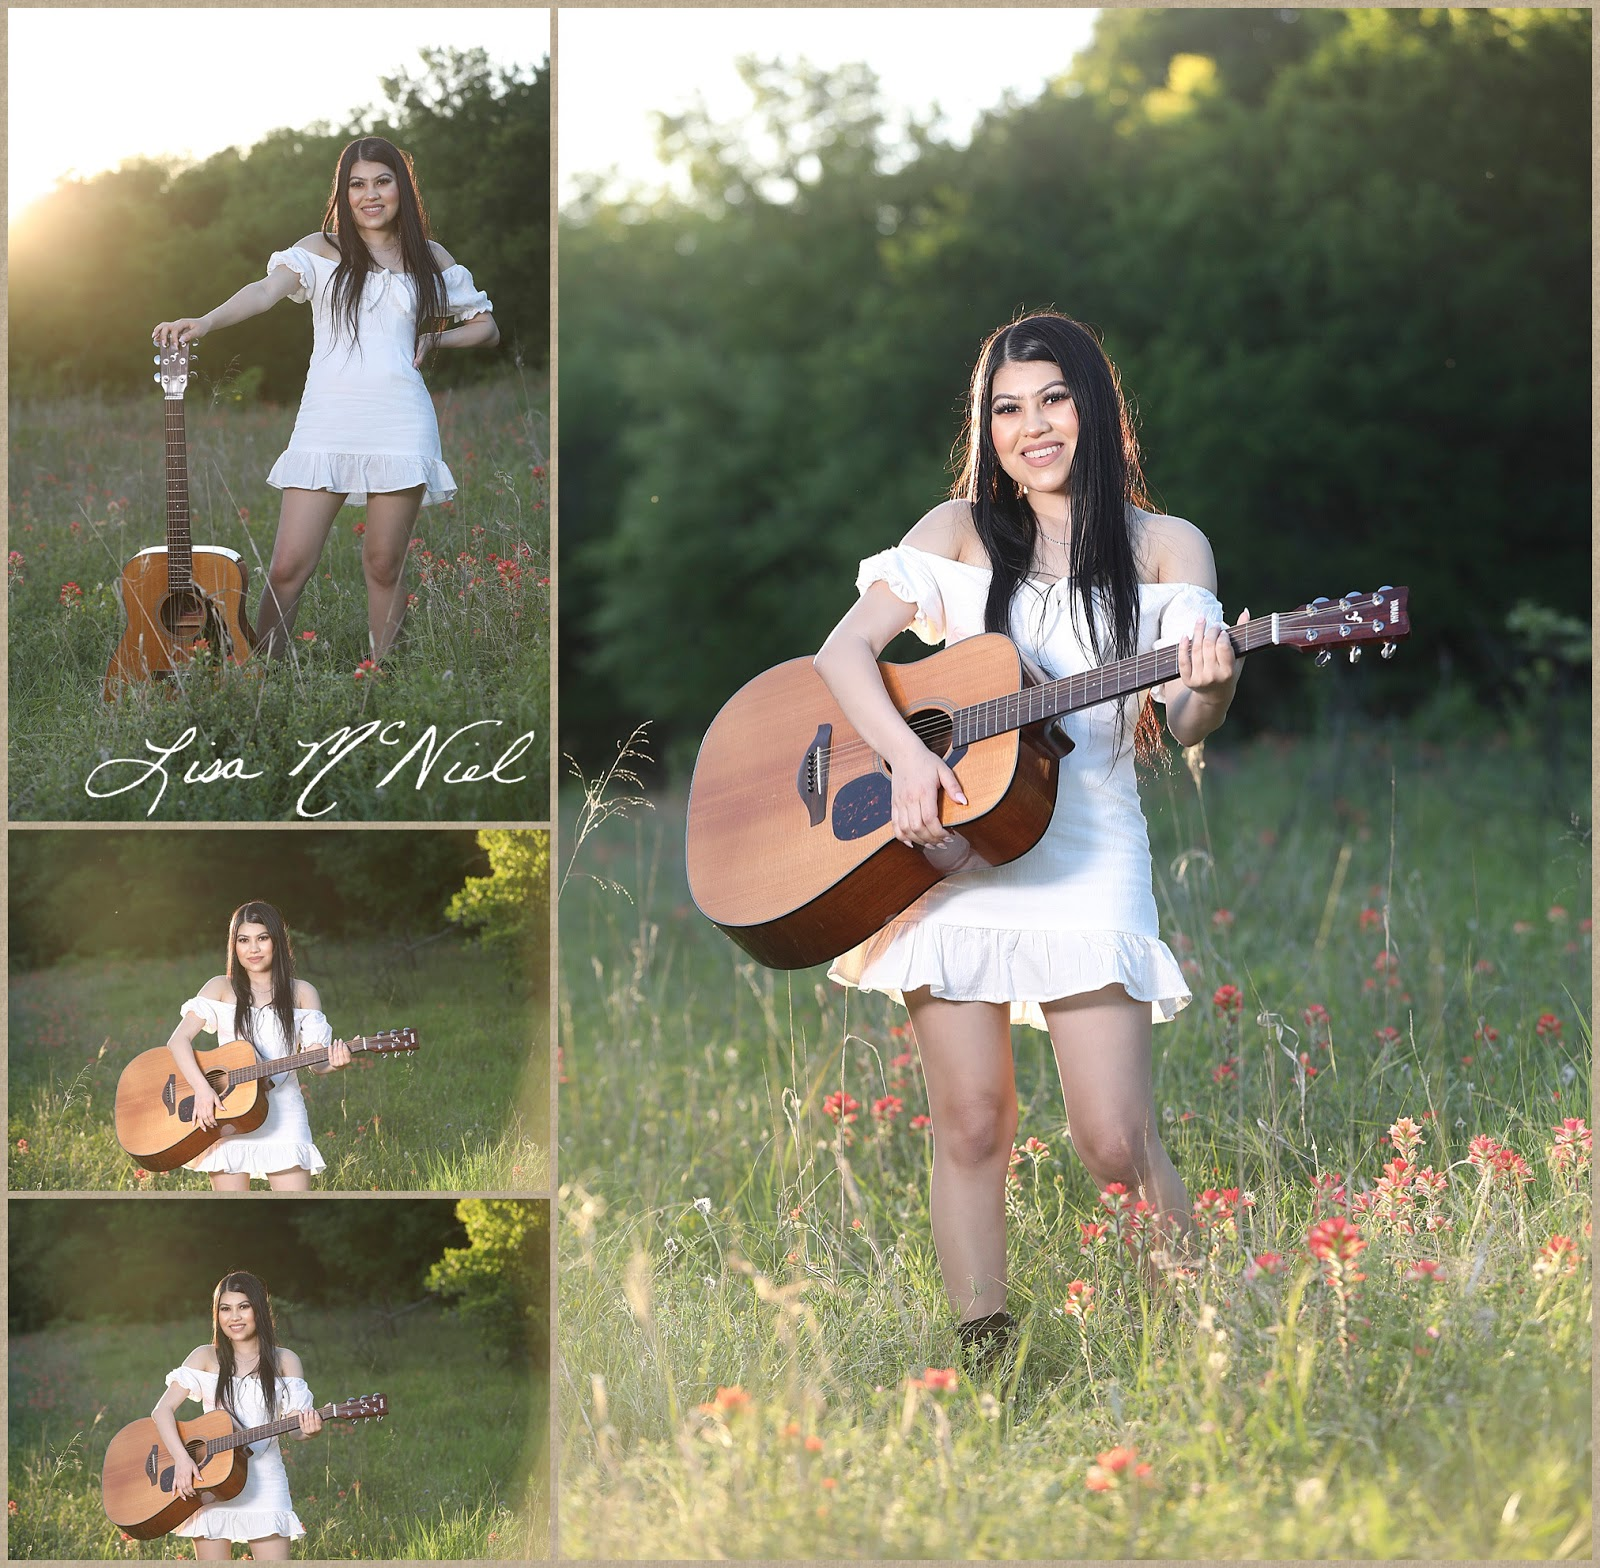 teen girl in white dress in wildflowers with guitar